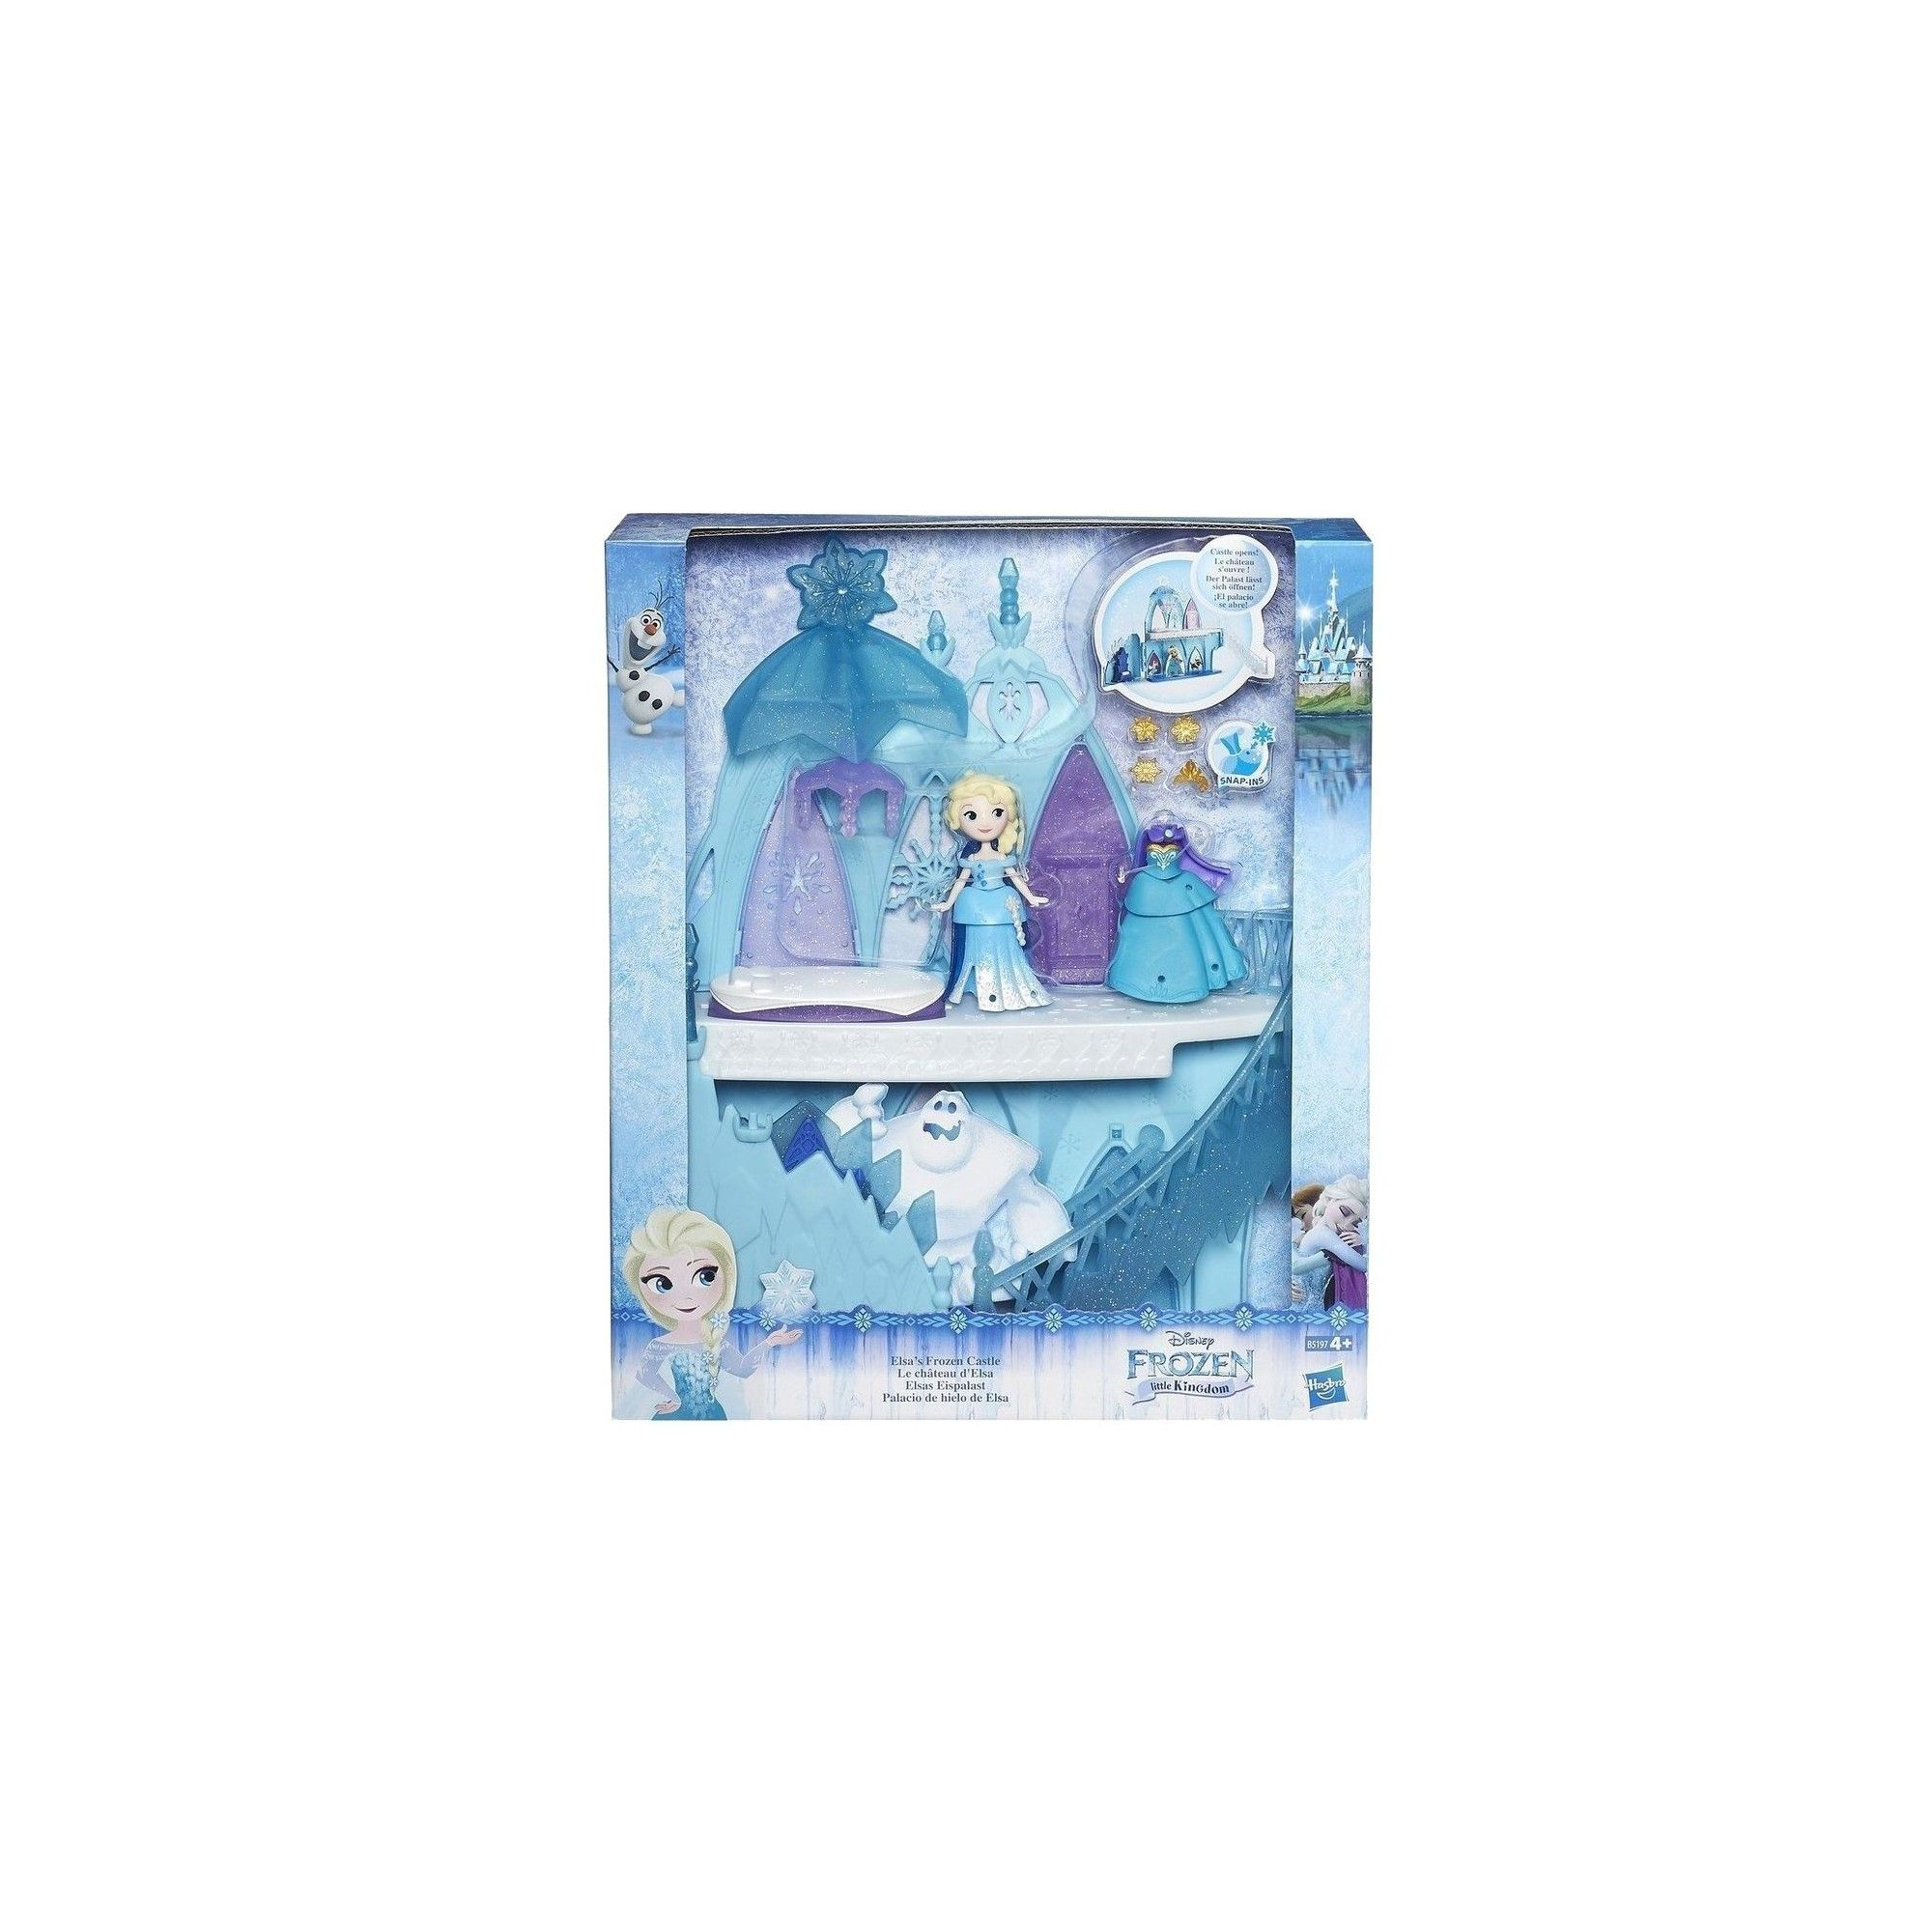 Disney la reine des neiges le ch teau d 39 elsa b5197 for Le chateau de la reine des neiges